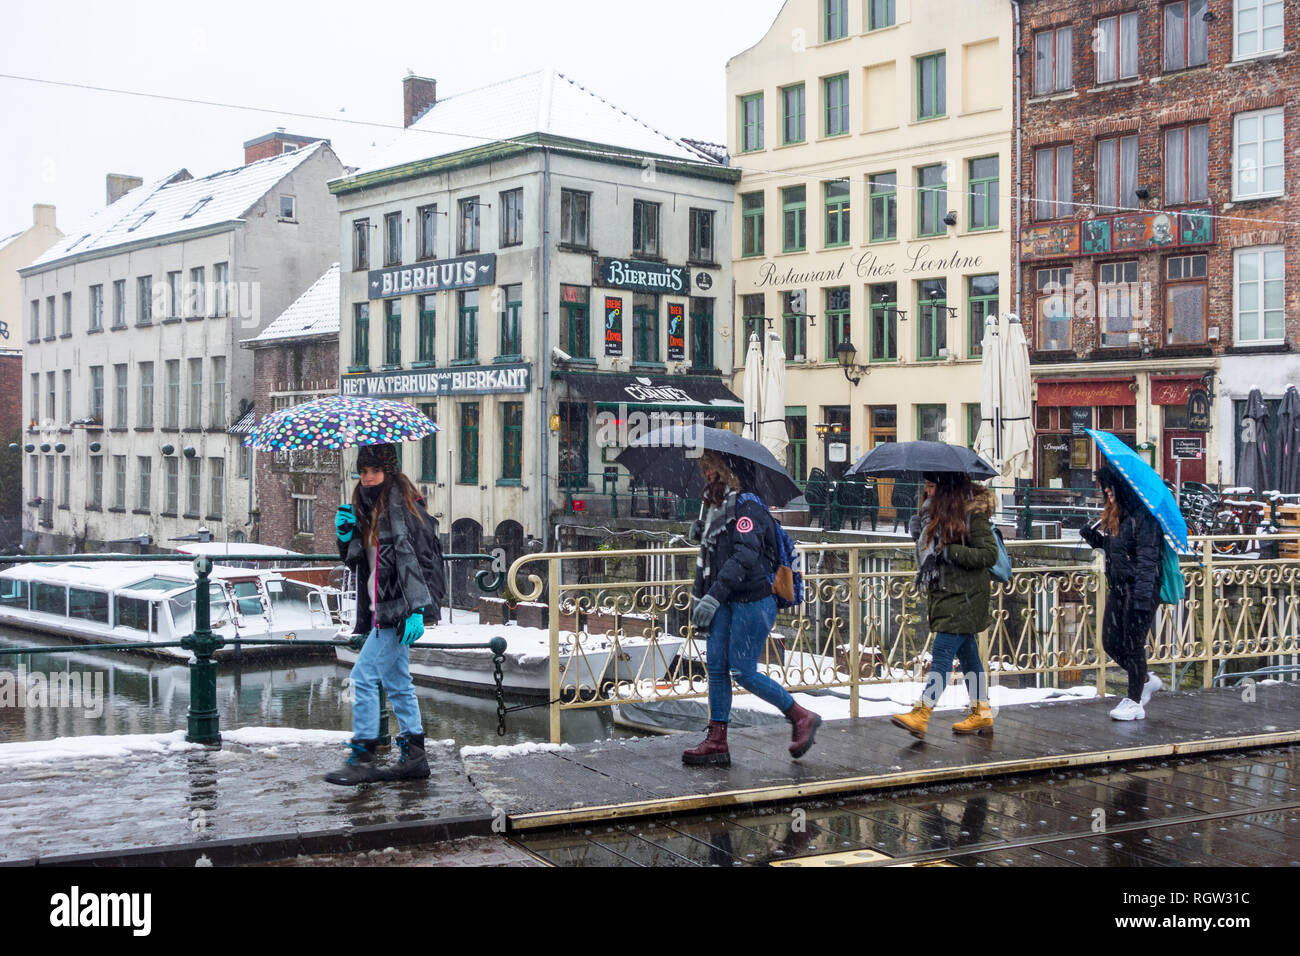 Tourists with umbrellas walking during snow shower / sleet in the city Ghent, East Flanders, Belgium - Stock Image